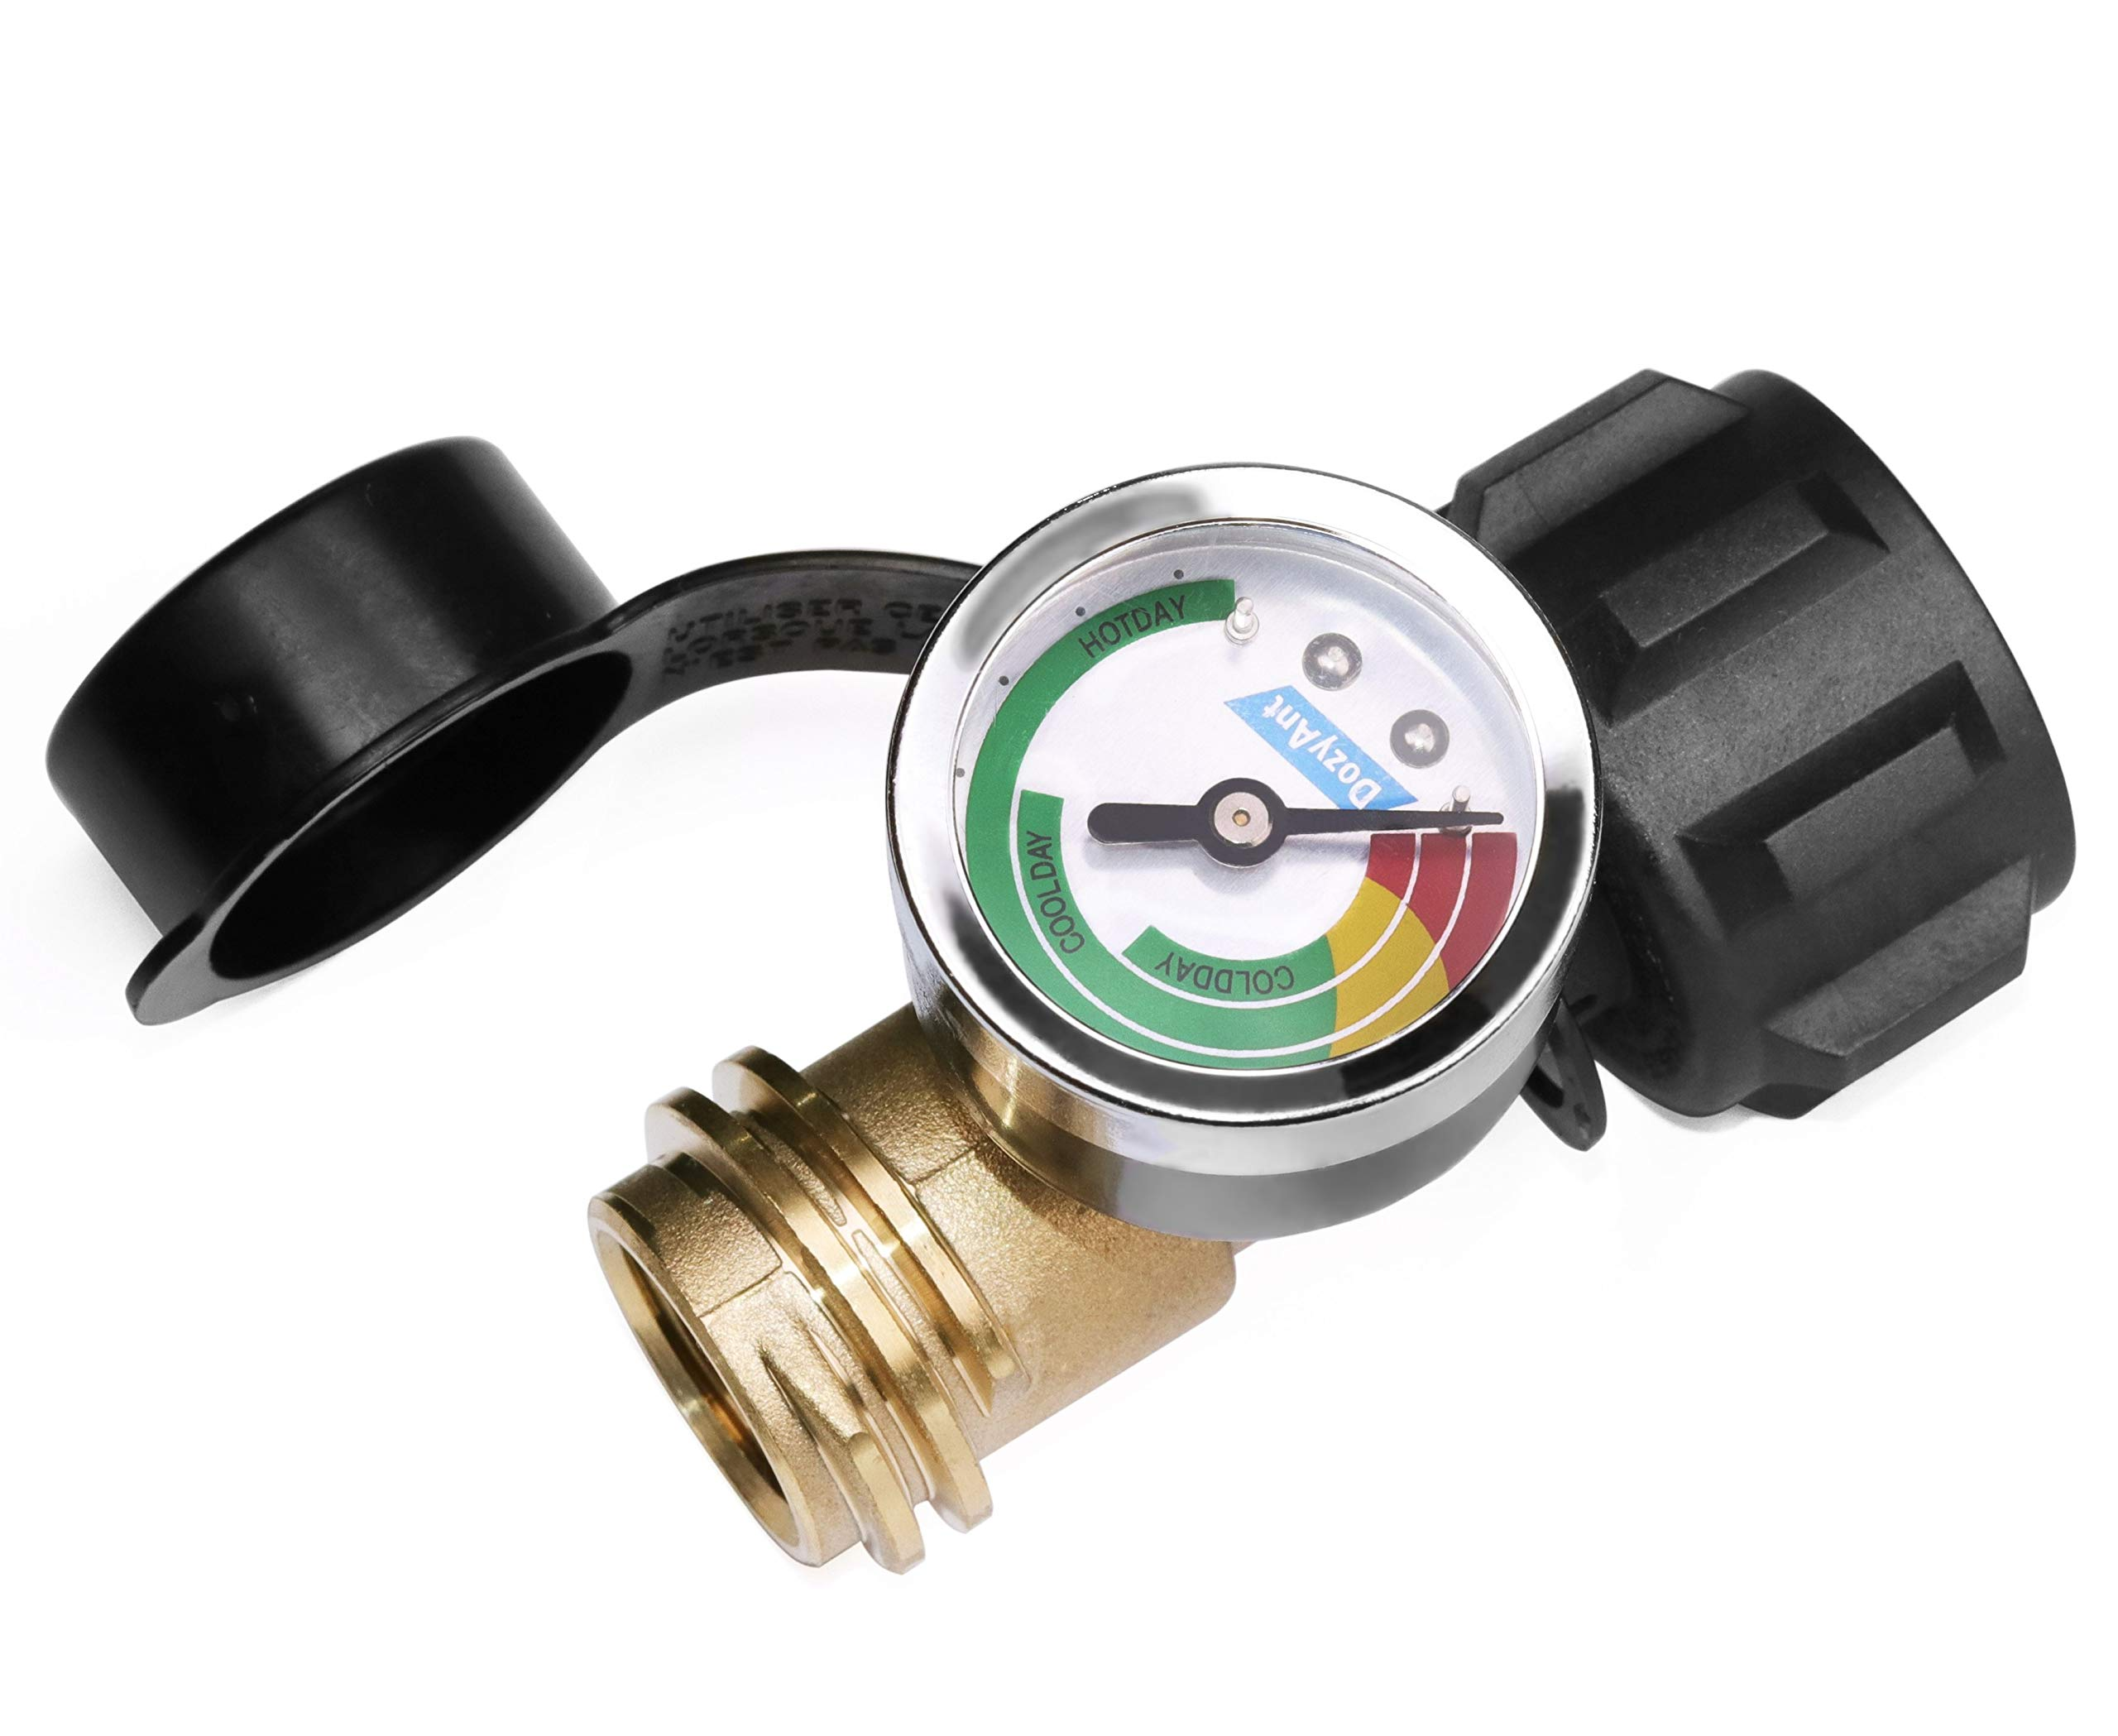 DOZYANT Propane Tank Gauge Level Indicator Leak Detector Pressure Meter Color Coded Universal for Cylinder, BBQ Gas Grill, RV Camper, Heater and More Appliances-Type 1 Connection